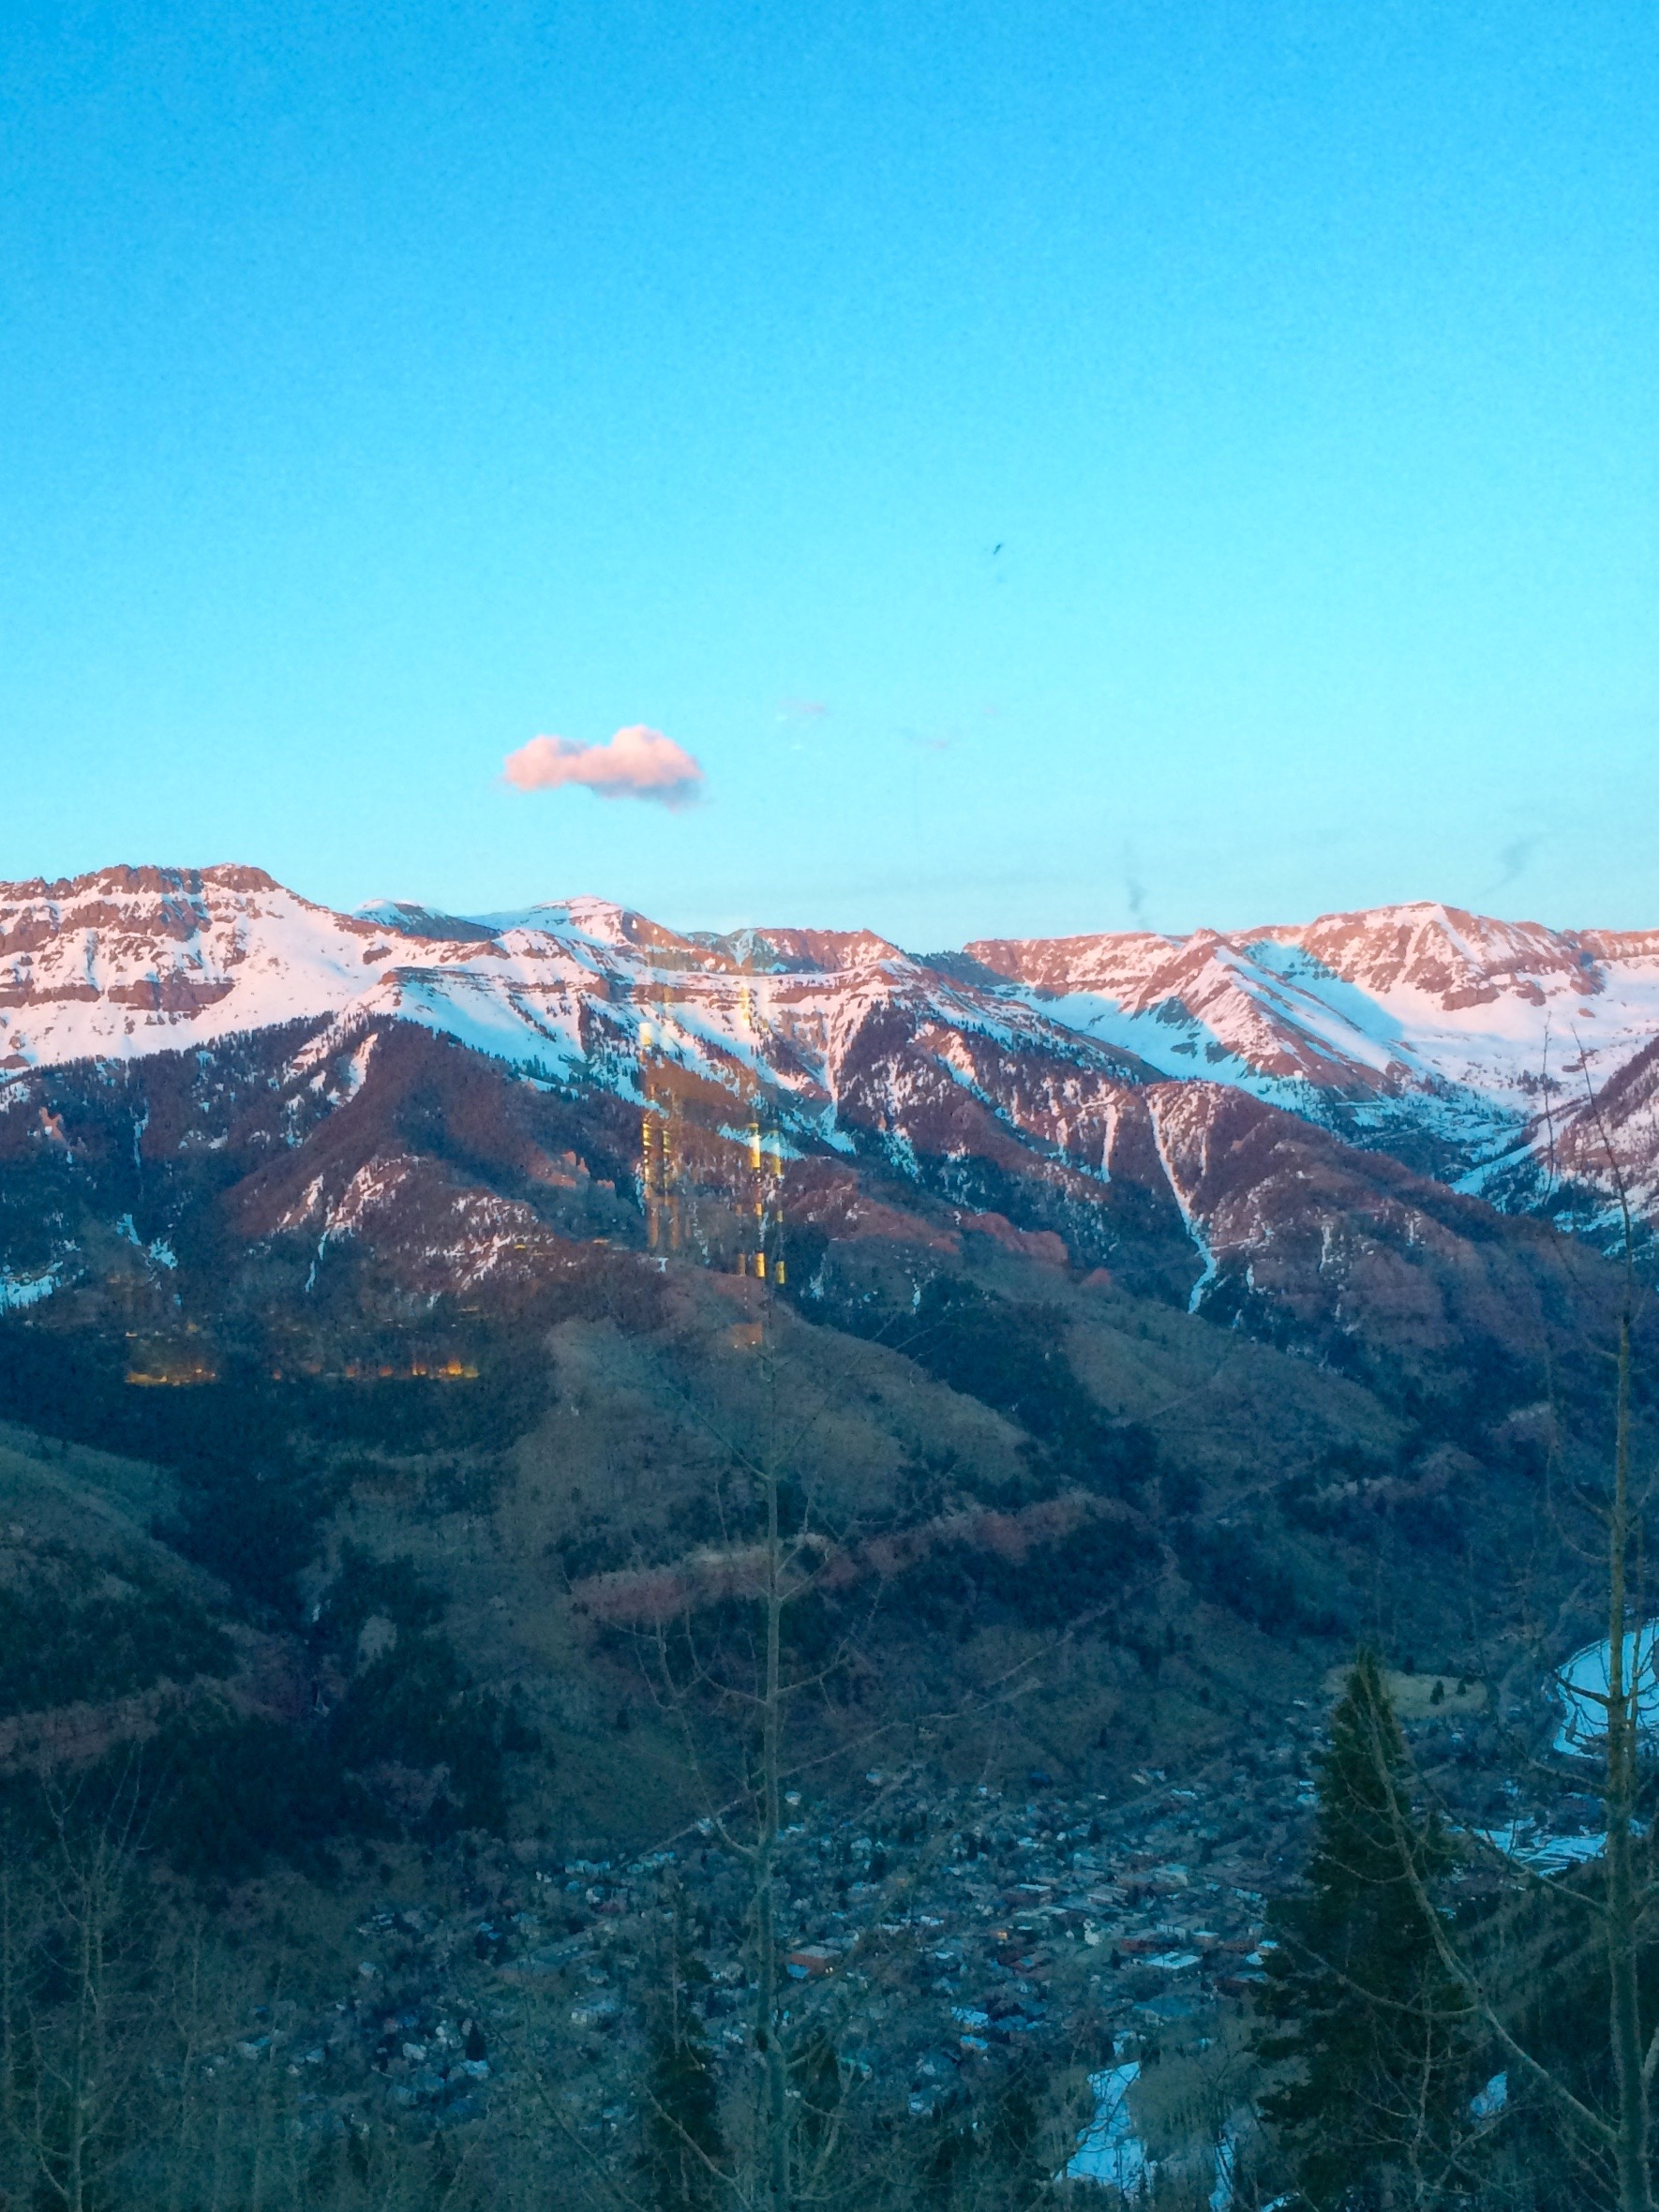 Arrive at Allred's right at 3 p.m. to score a seat by a window peering out over Telluride.